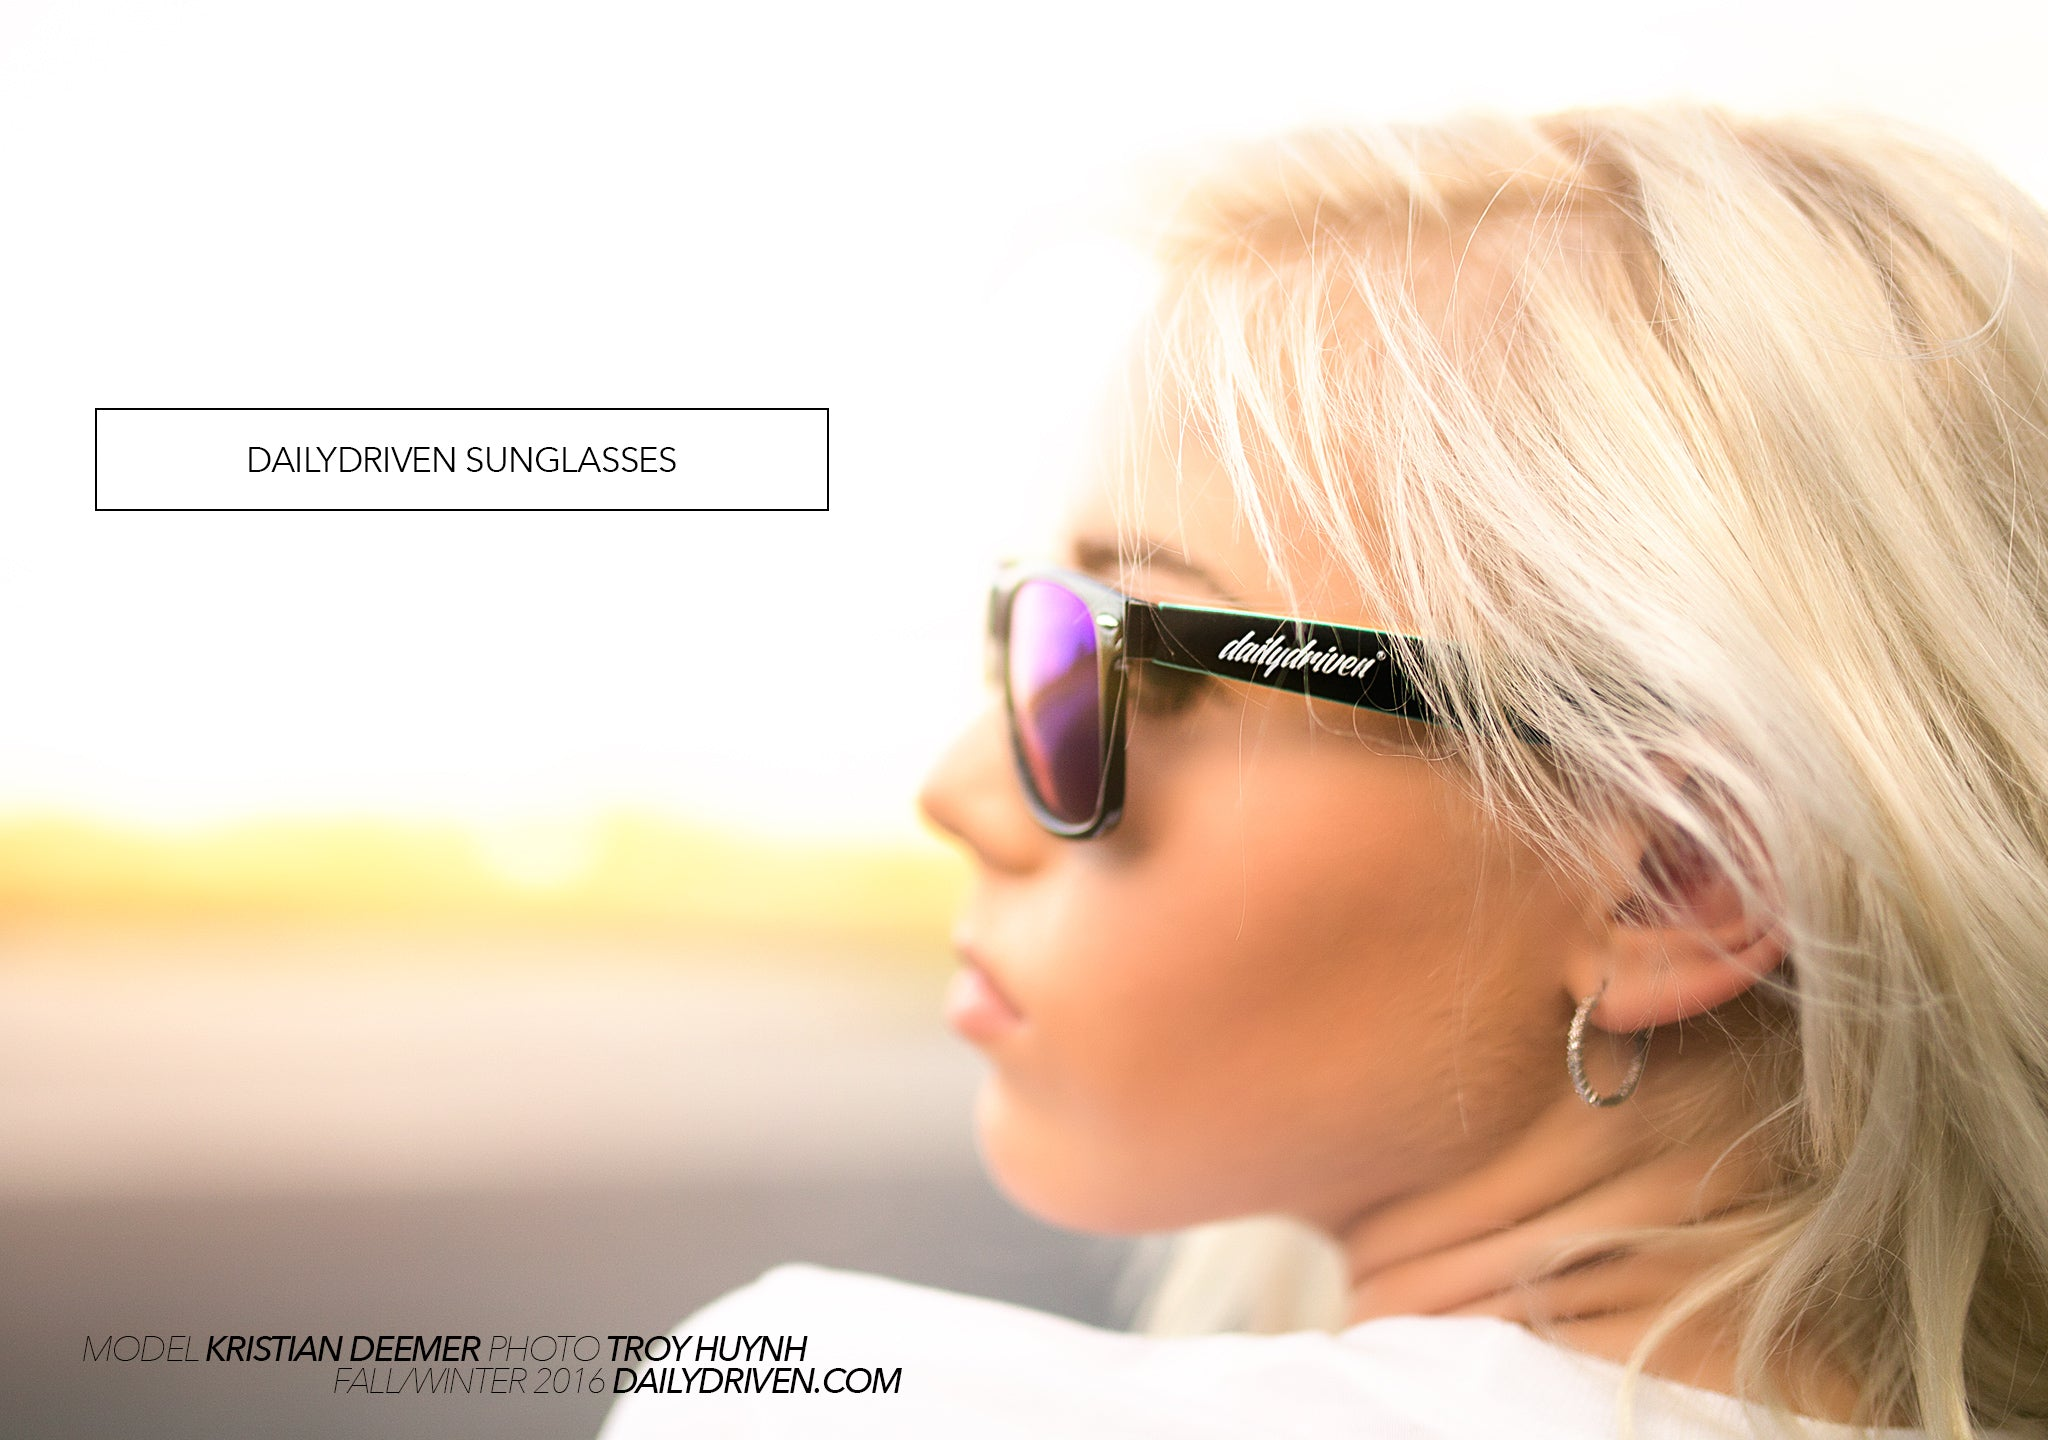 DailyDriven Sunglasses